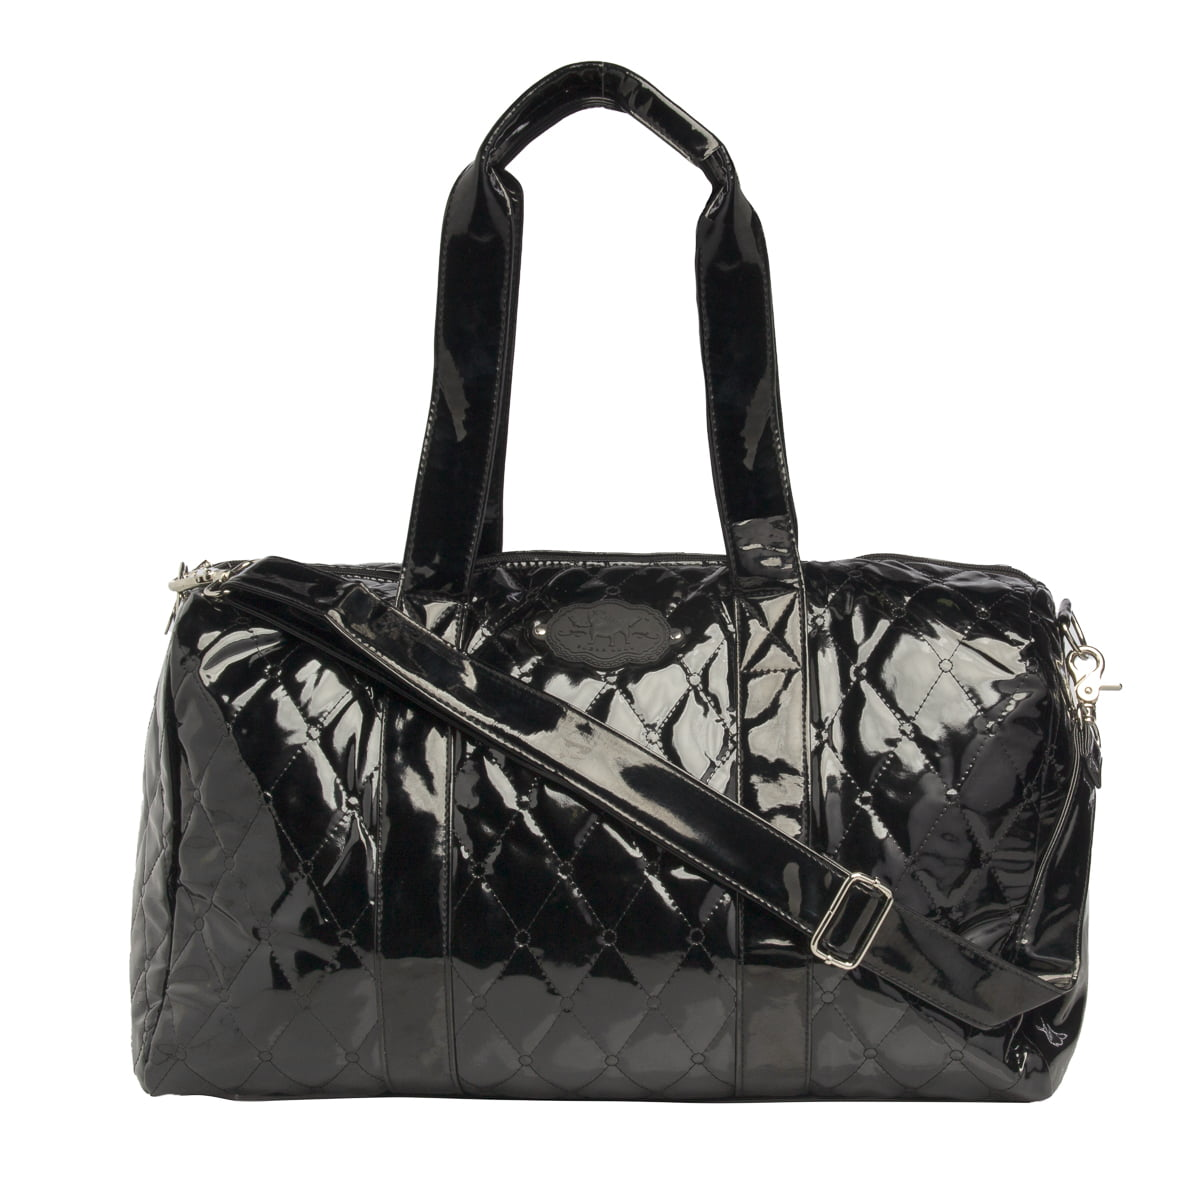 Sugar Lulu 19 Inch Patent Leather Duffle Bag For Kids Travel Women Sleepover Bags S Cute